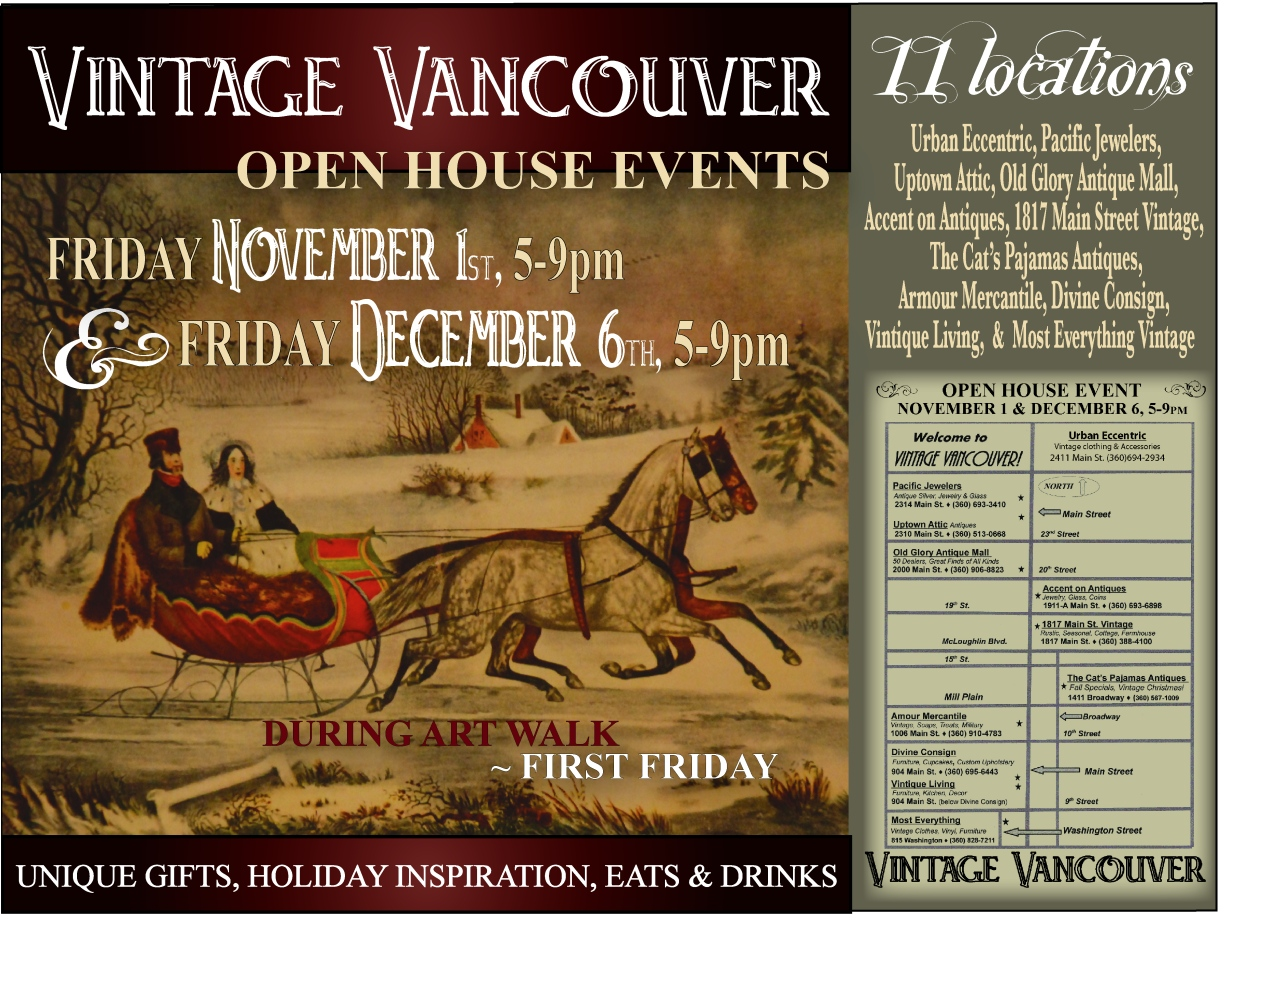 You are Invited to our Holiday Open House Events